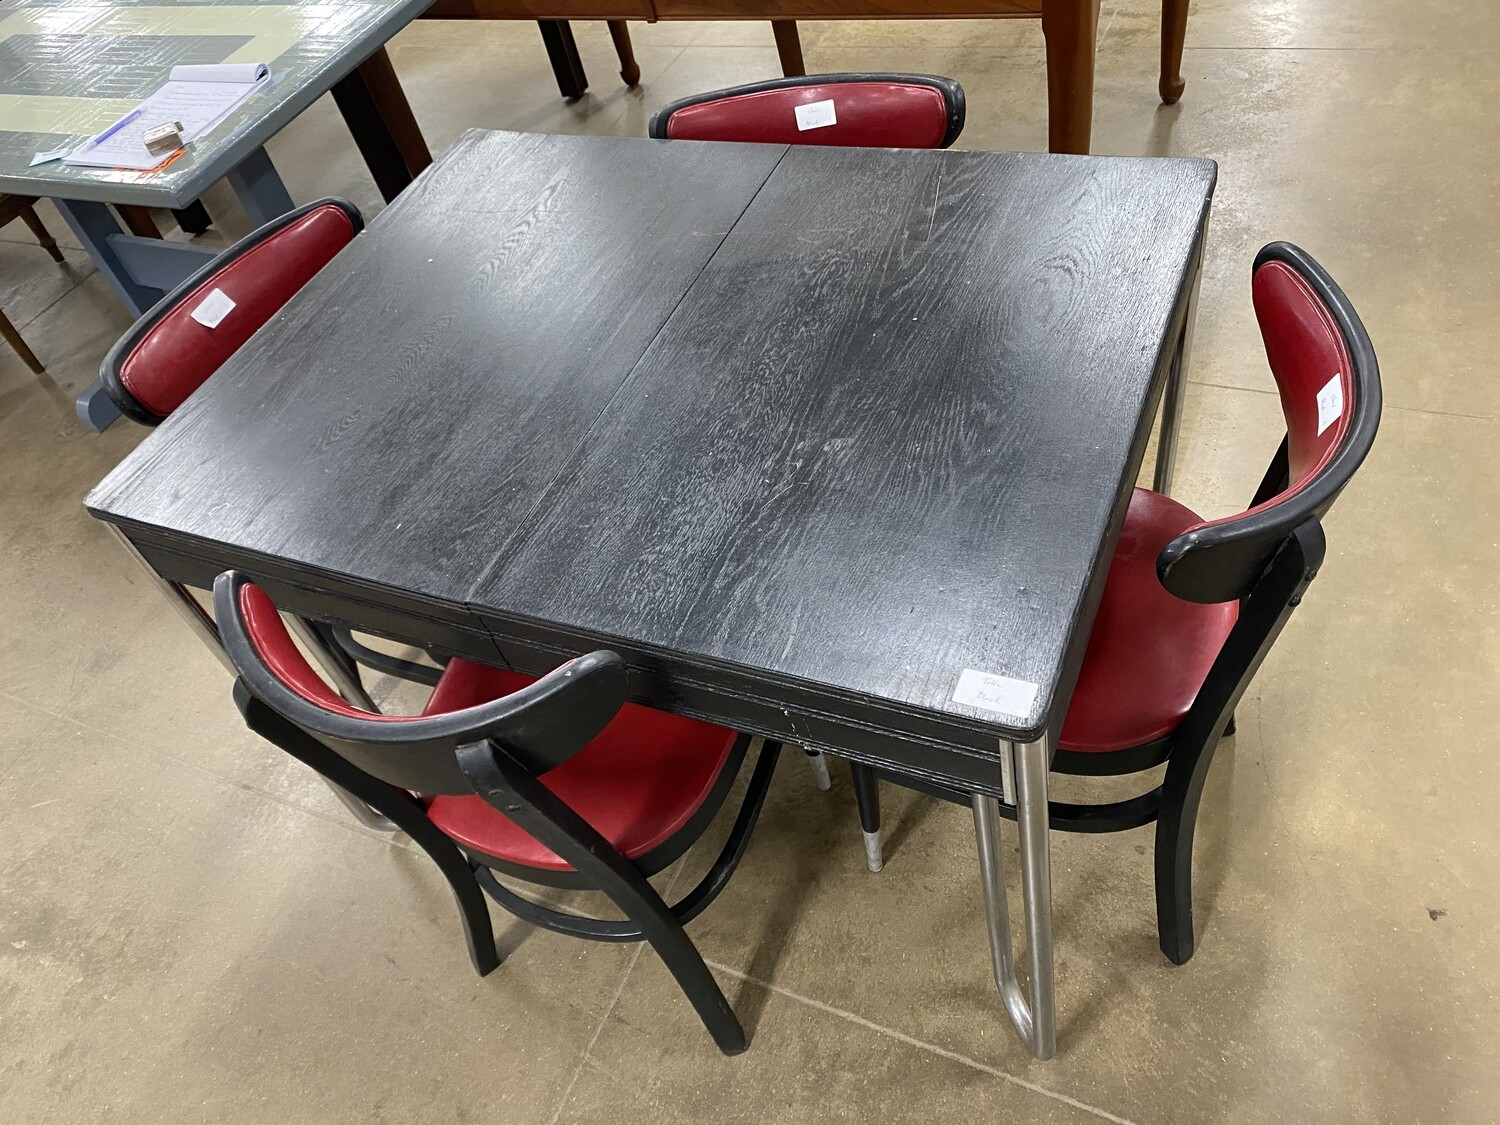 Dining Table with 4 chairs - Black & Red